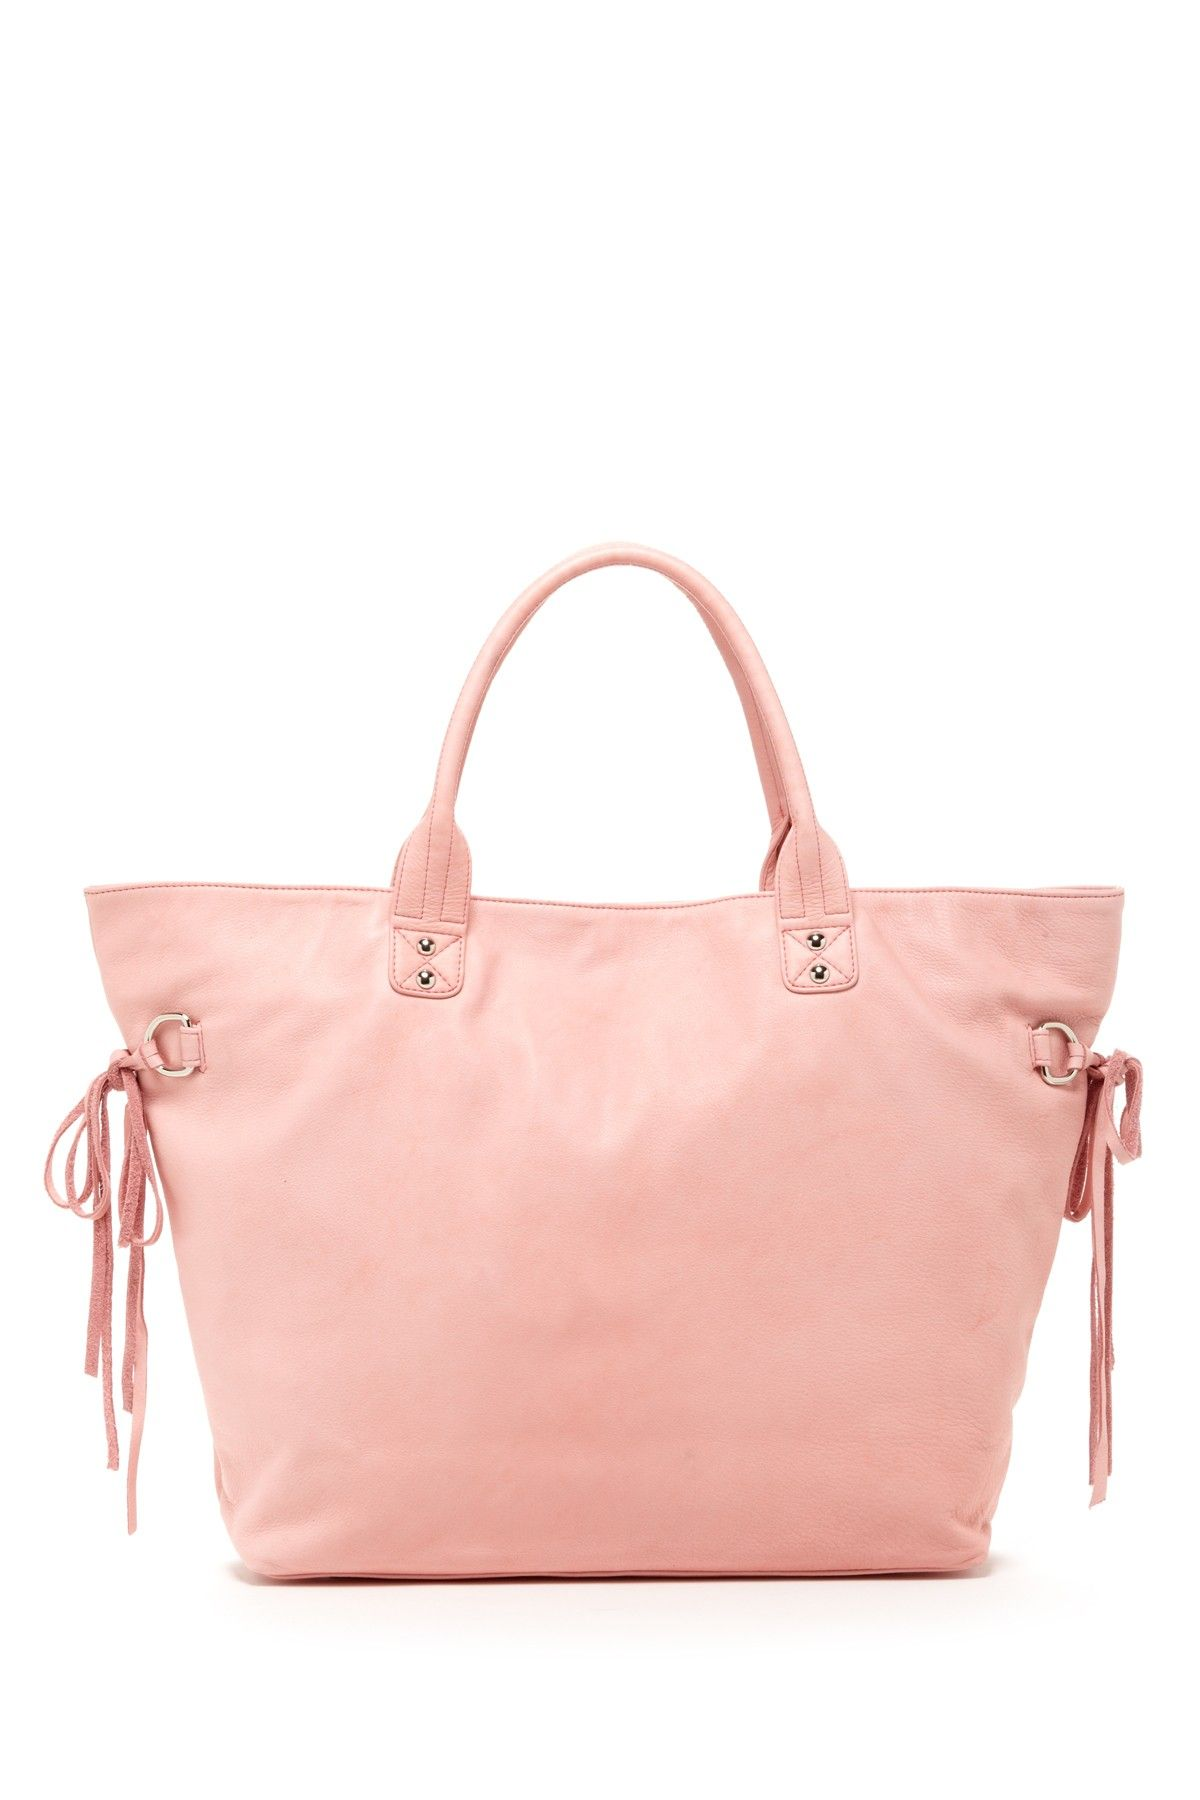 Posse Marie Large Tote I love it its pink!!!!?